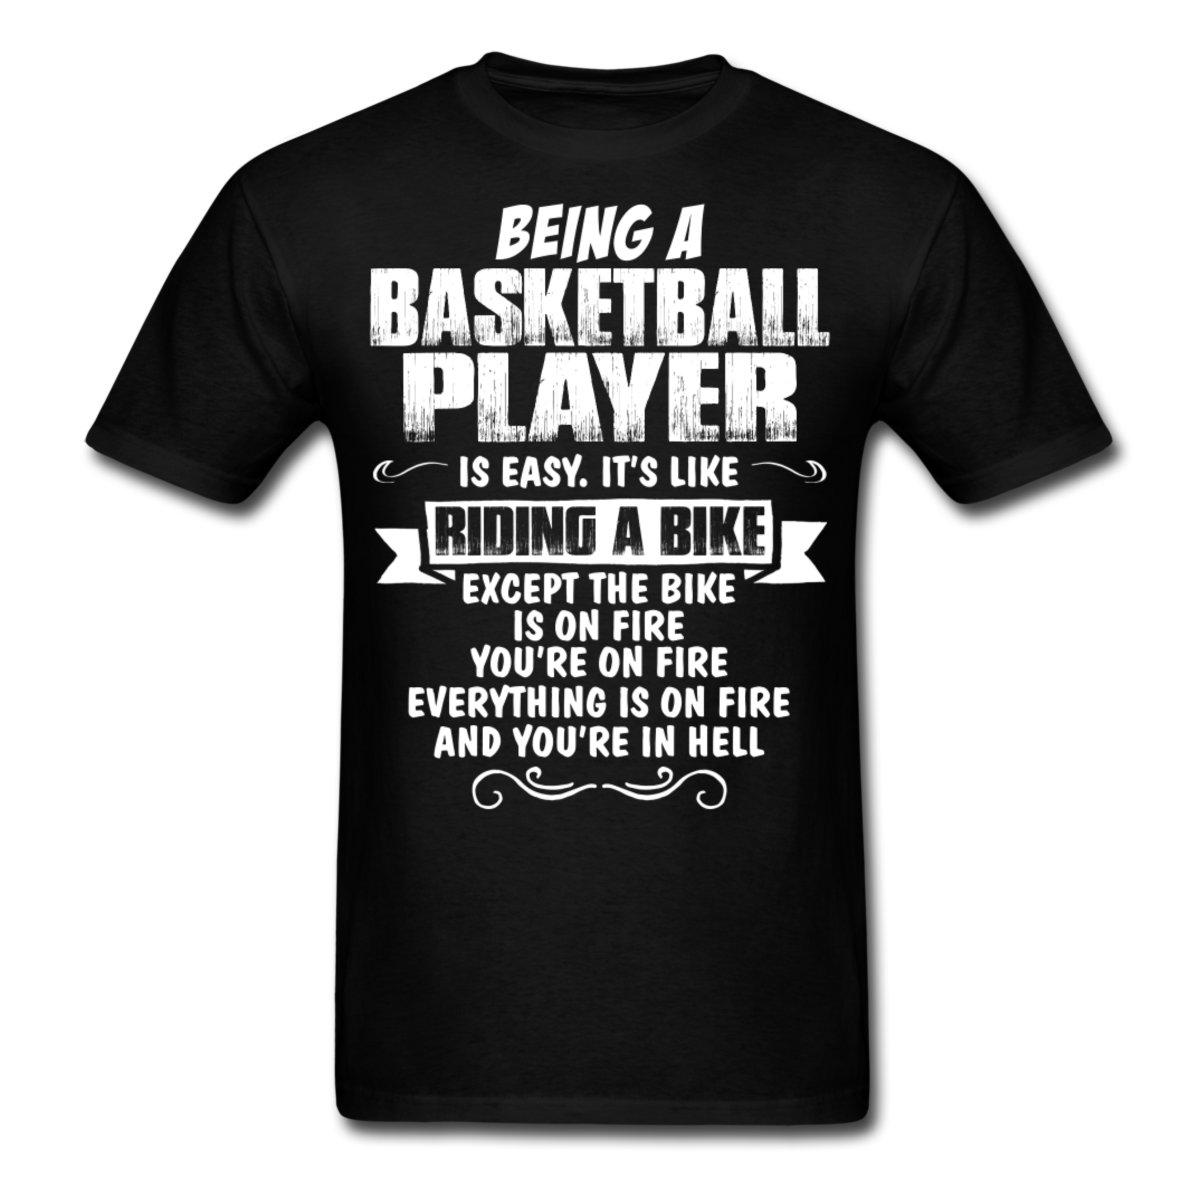 cool basketball t shirt designs - Basketball T Shirt Design Ideas